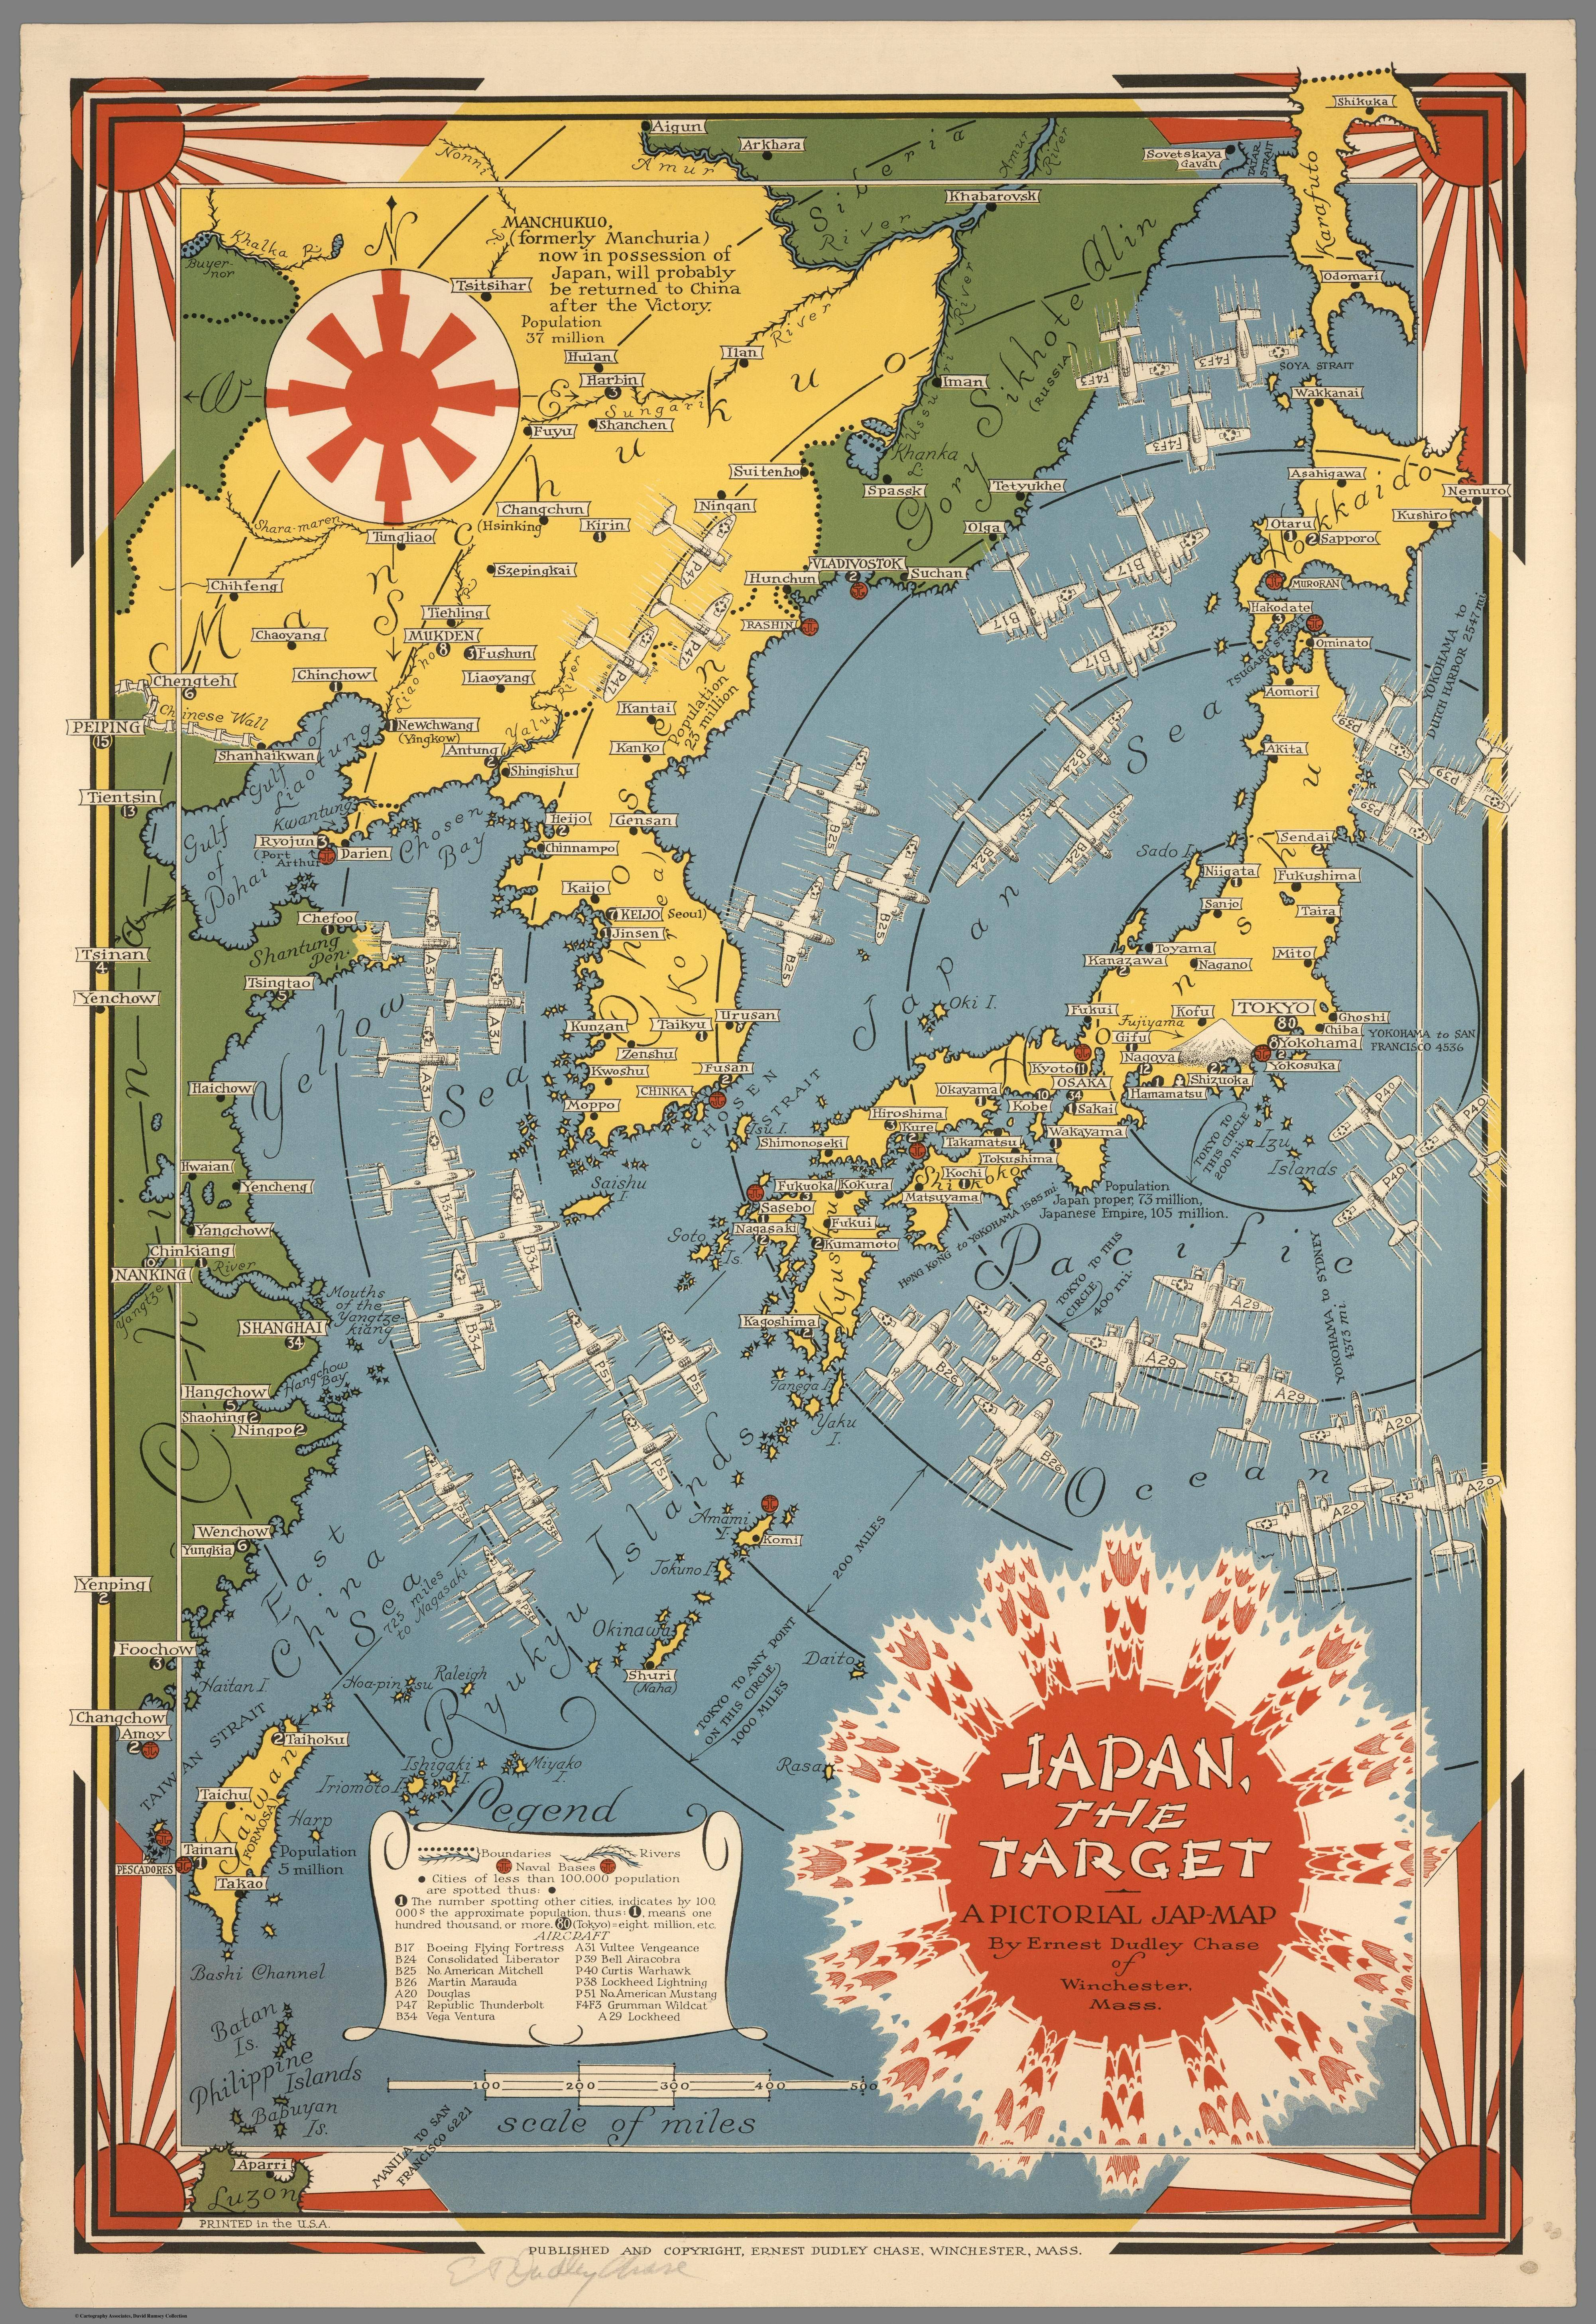 Japan the target a pictorial map made by ernest dudley chase japan the target a pictorial map made by ernest dudley chase 1942 gumiabroncs Gallery